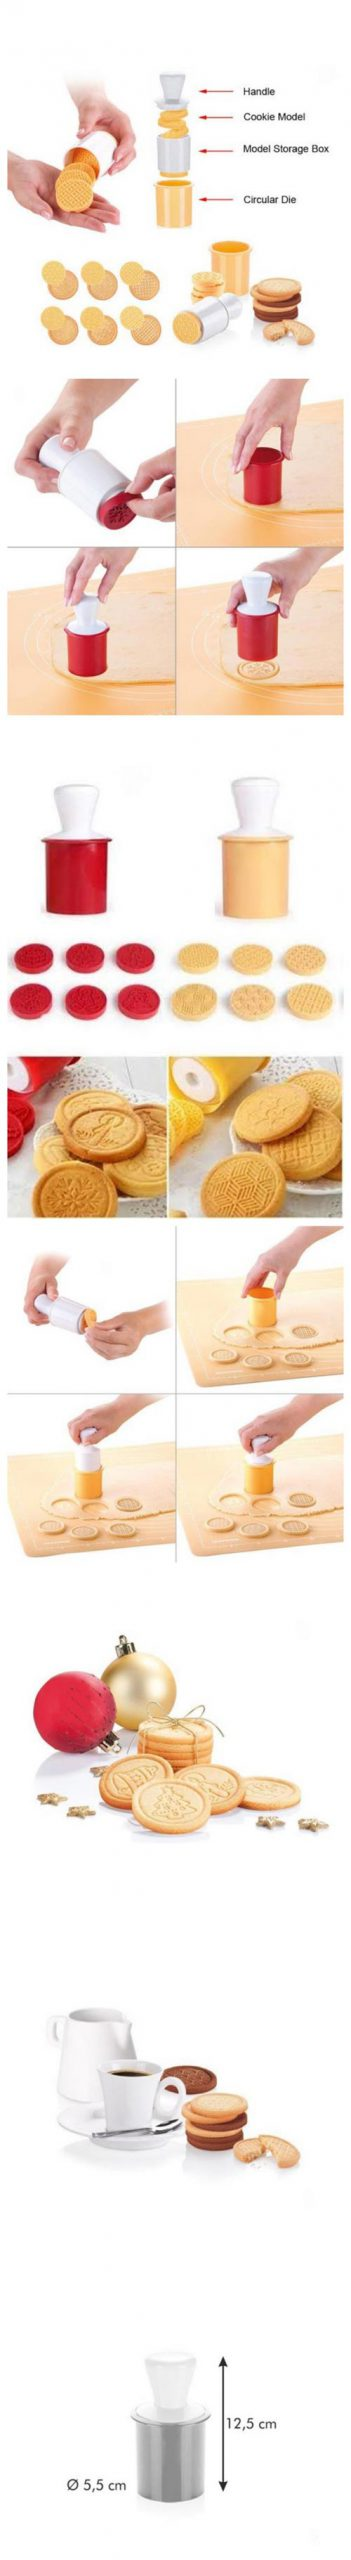 Tescoma Delicia Cookie Stamp 6 Patterns